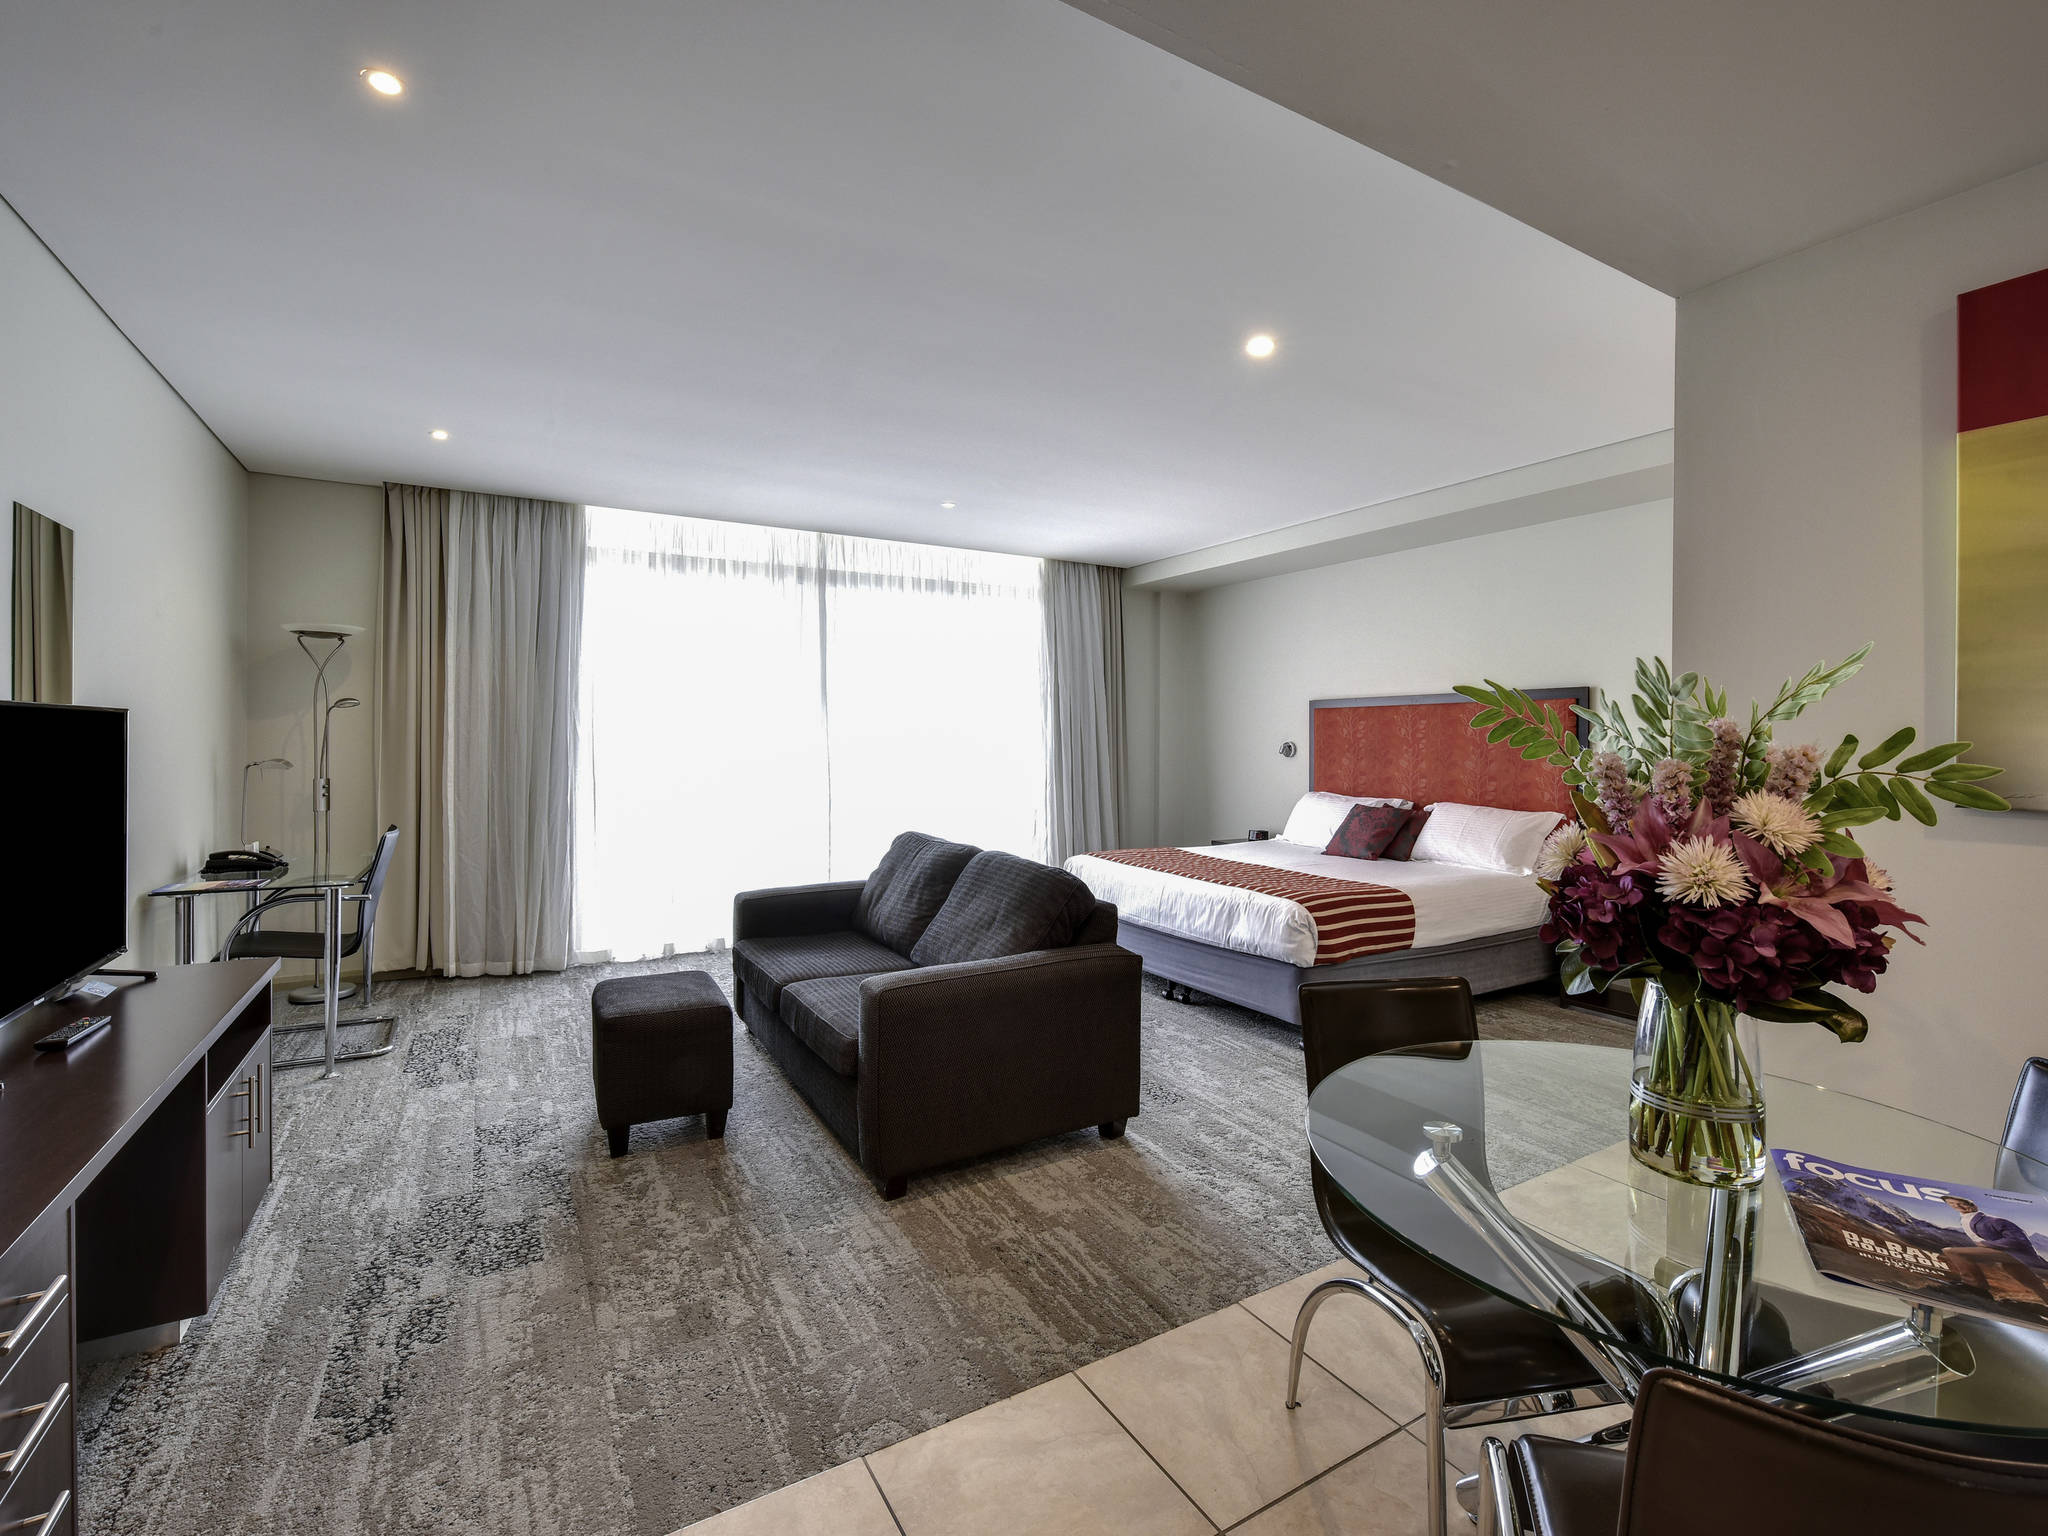 port macquarie chat rooms We have found 90 businesses for cool room builders & construction in port macquarie, nsw 2444 - browns cool room constructions, mondo living by mccarthy building contractors, tfh hire.